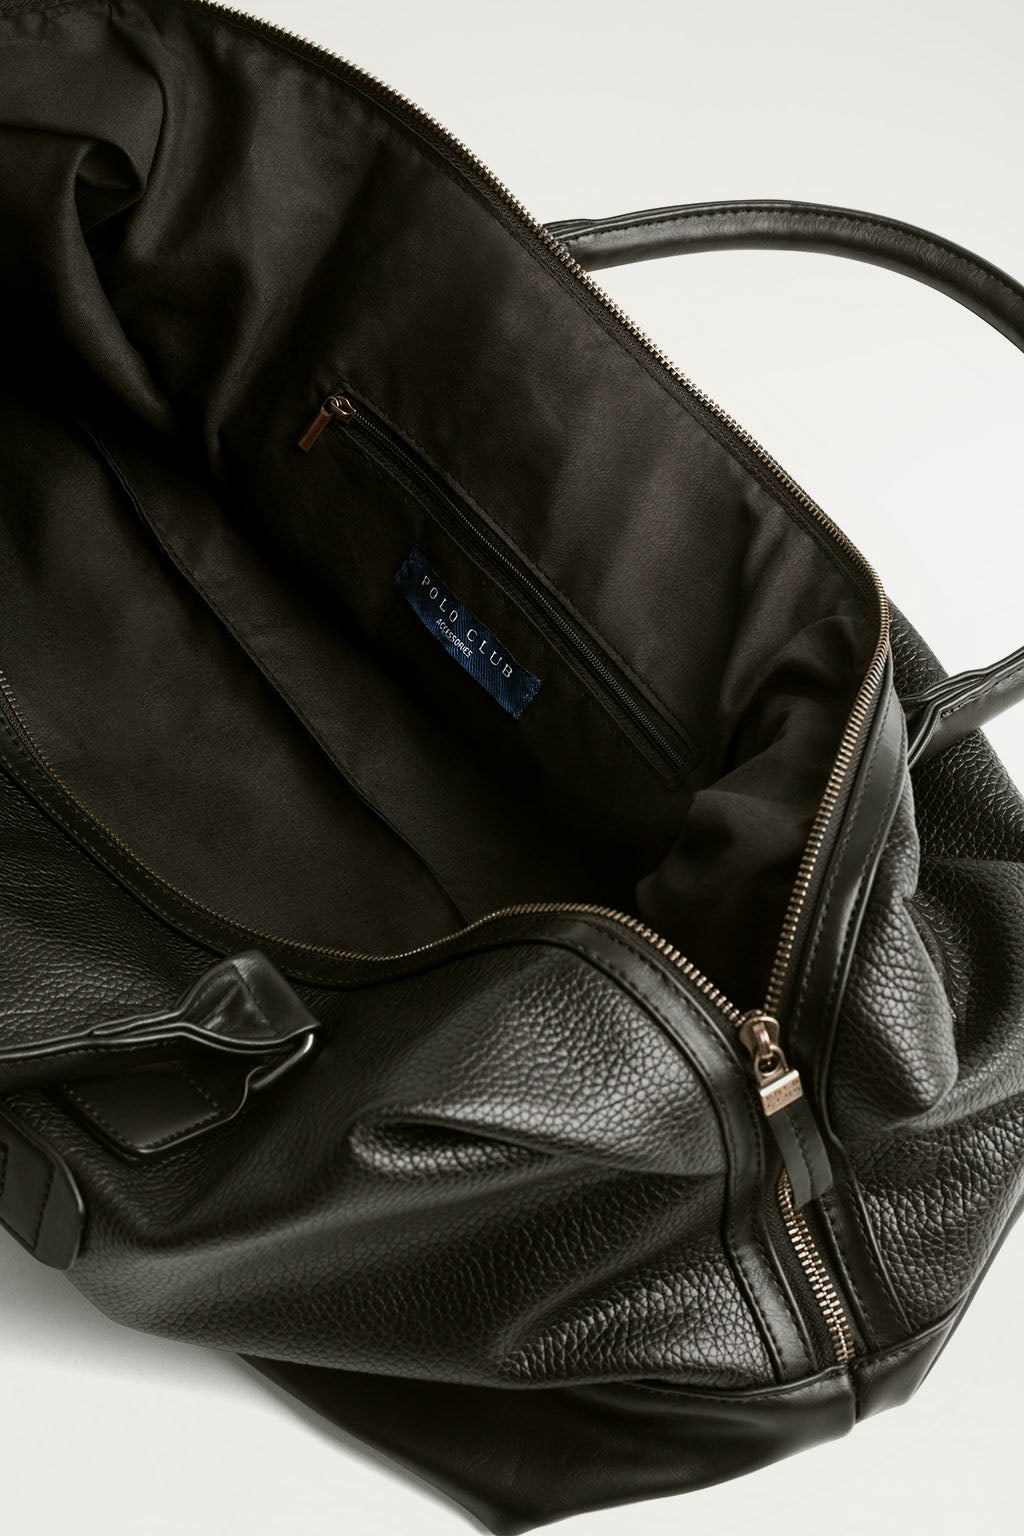 CLASSIC black Travel bag